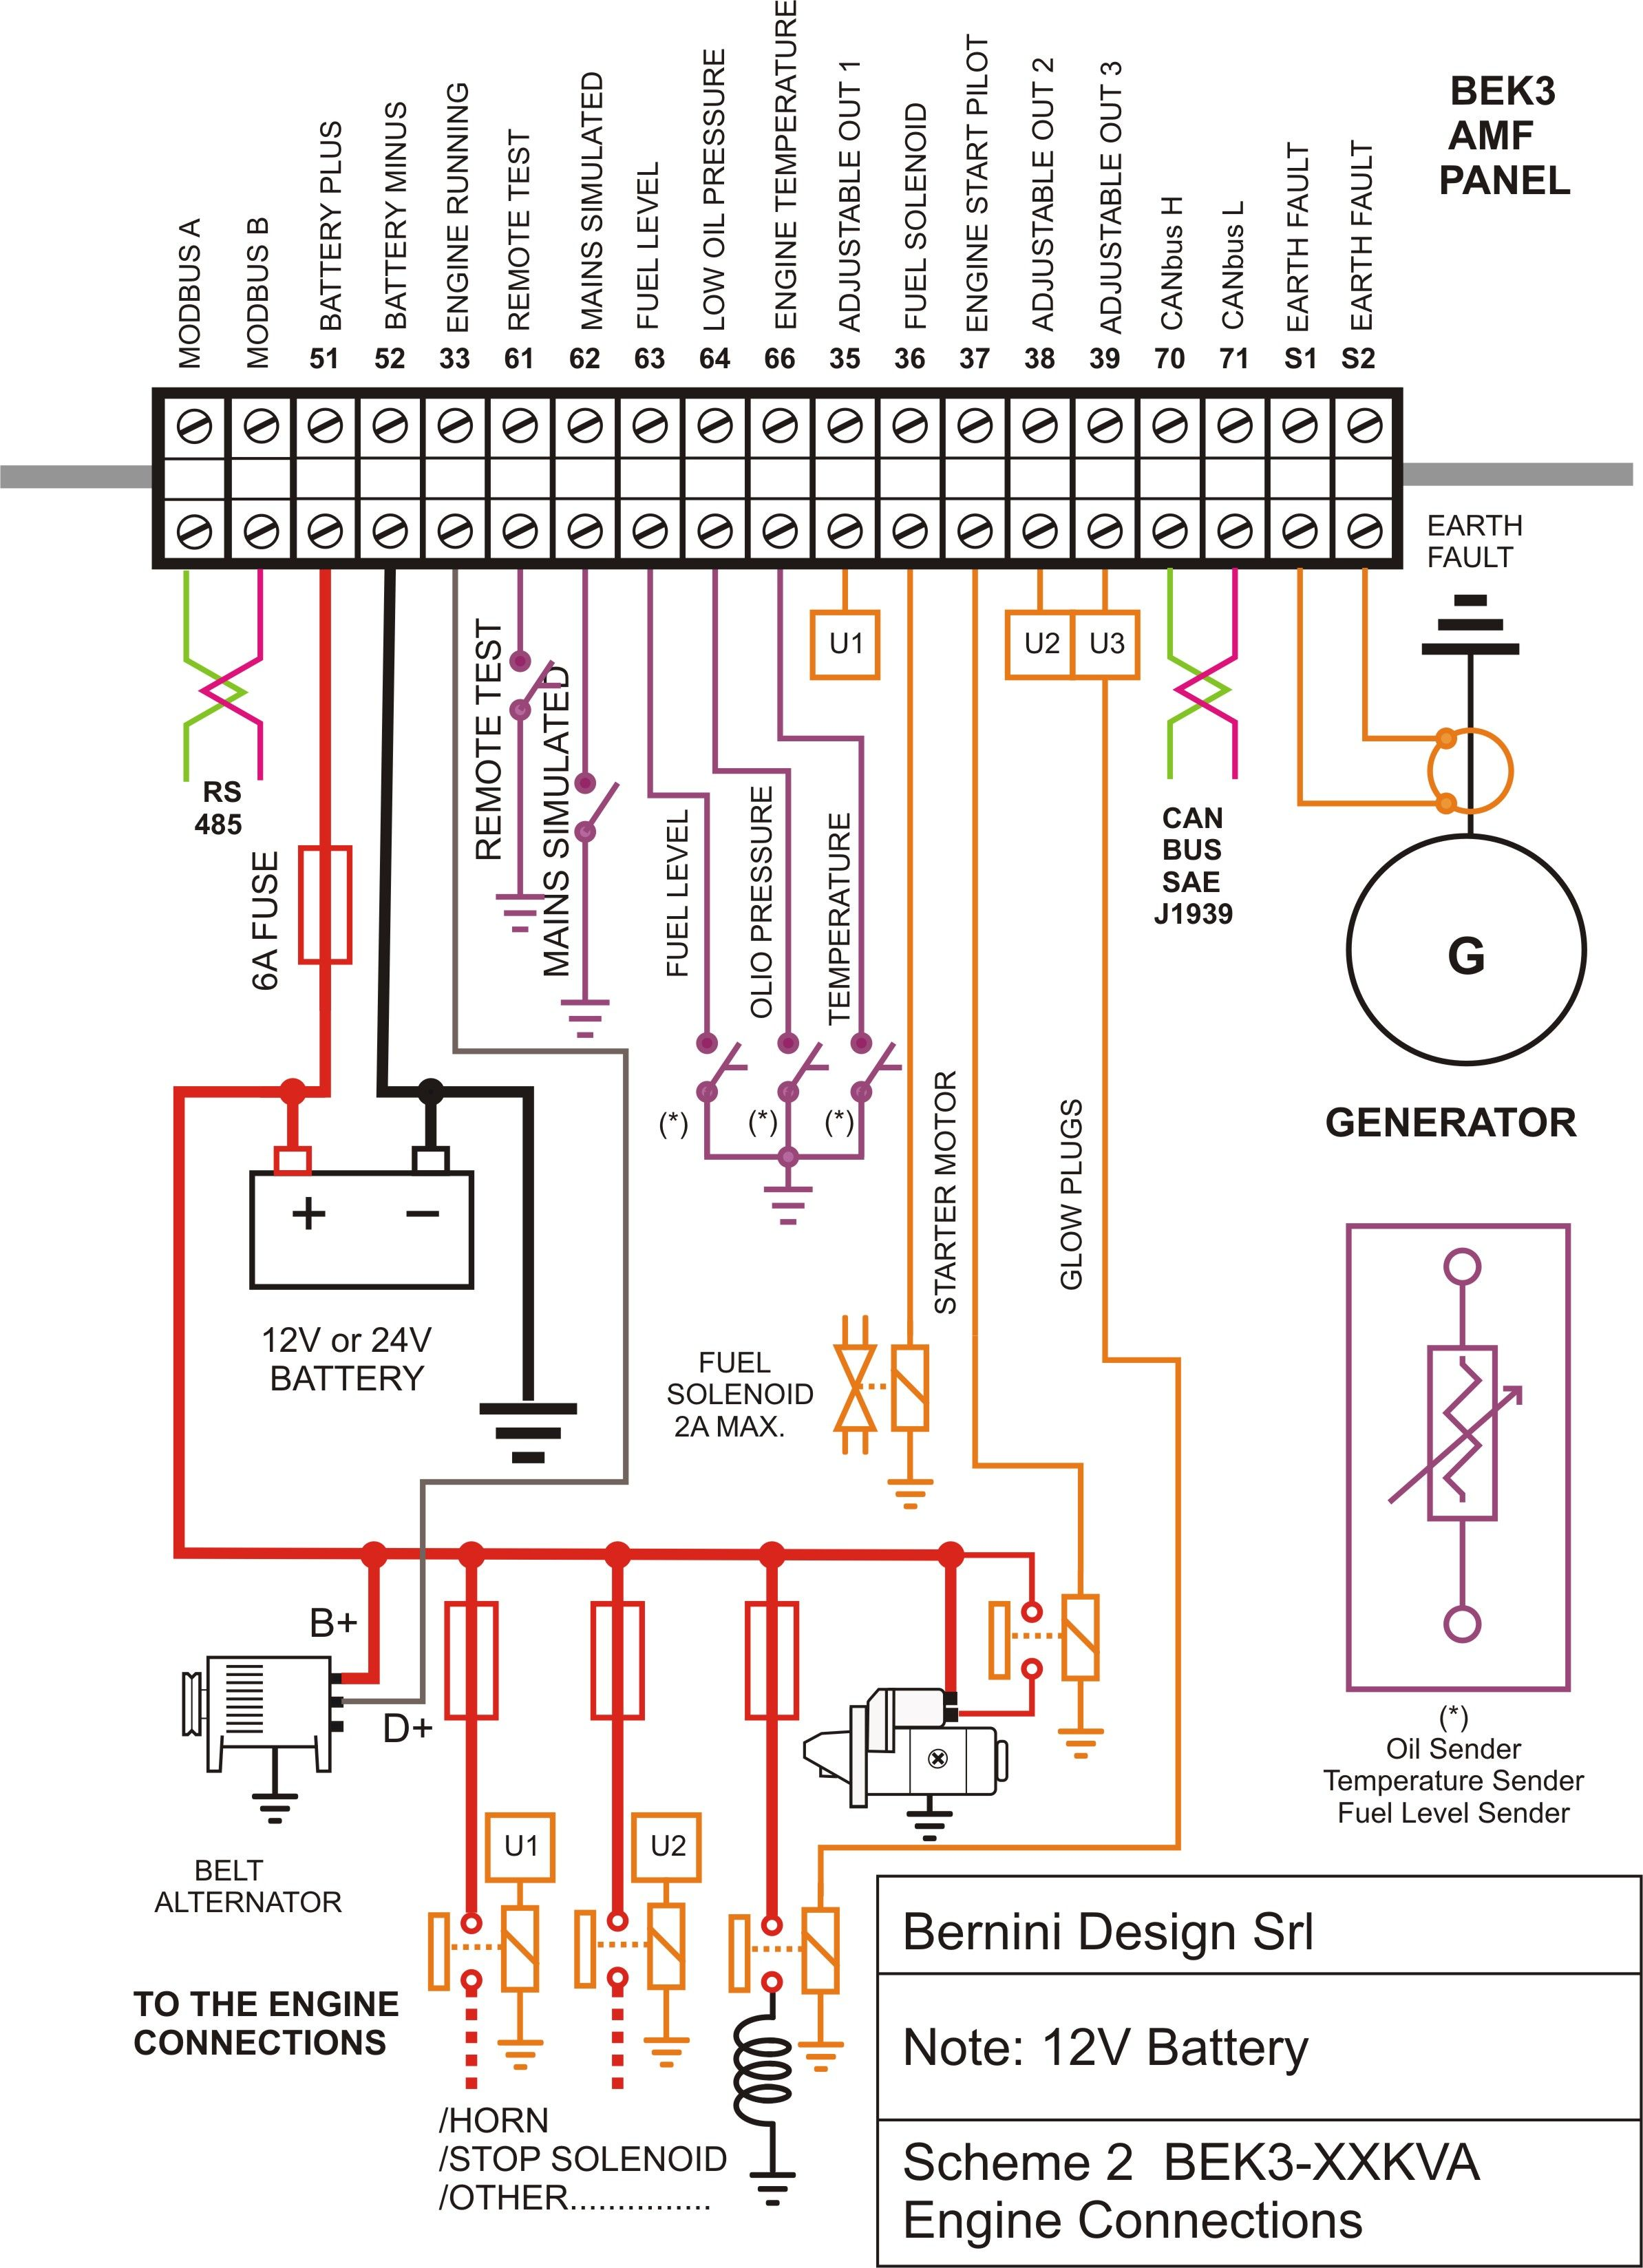 diesel generator control panel wiring diagram engine connections rh pinterest com electrical control diagram hvac wiring diagram for electrical control panel